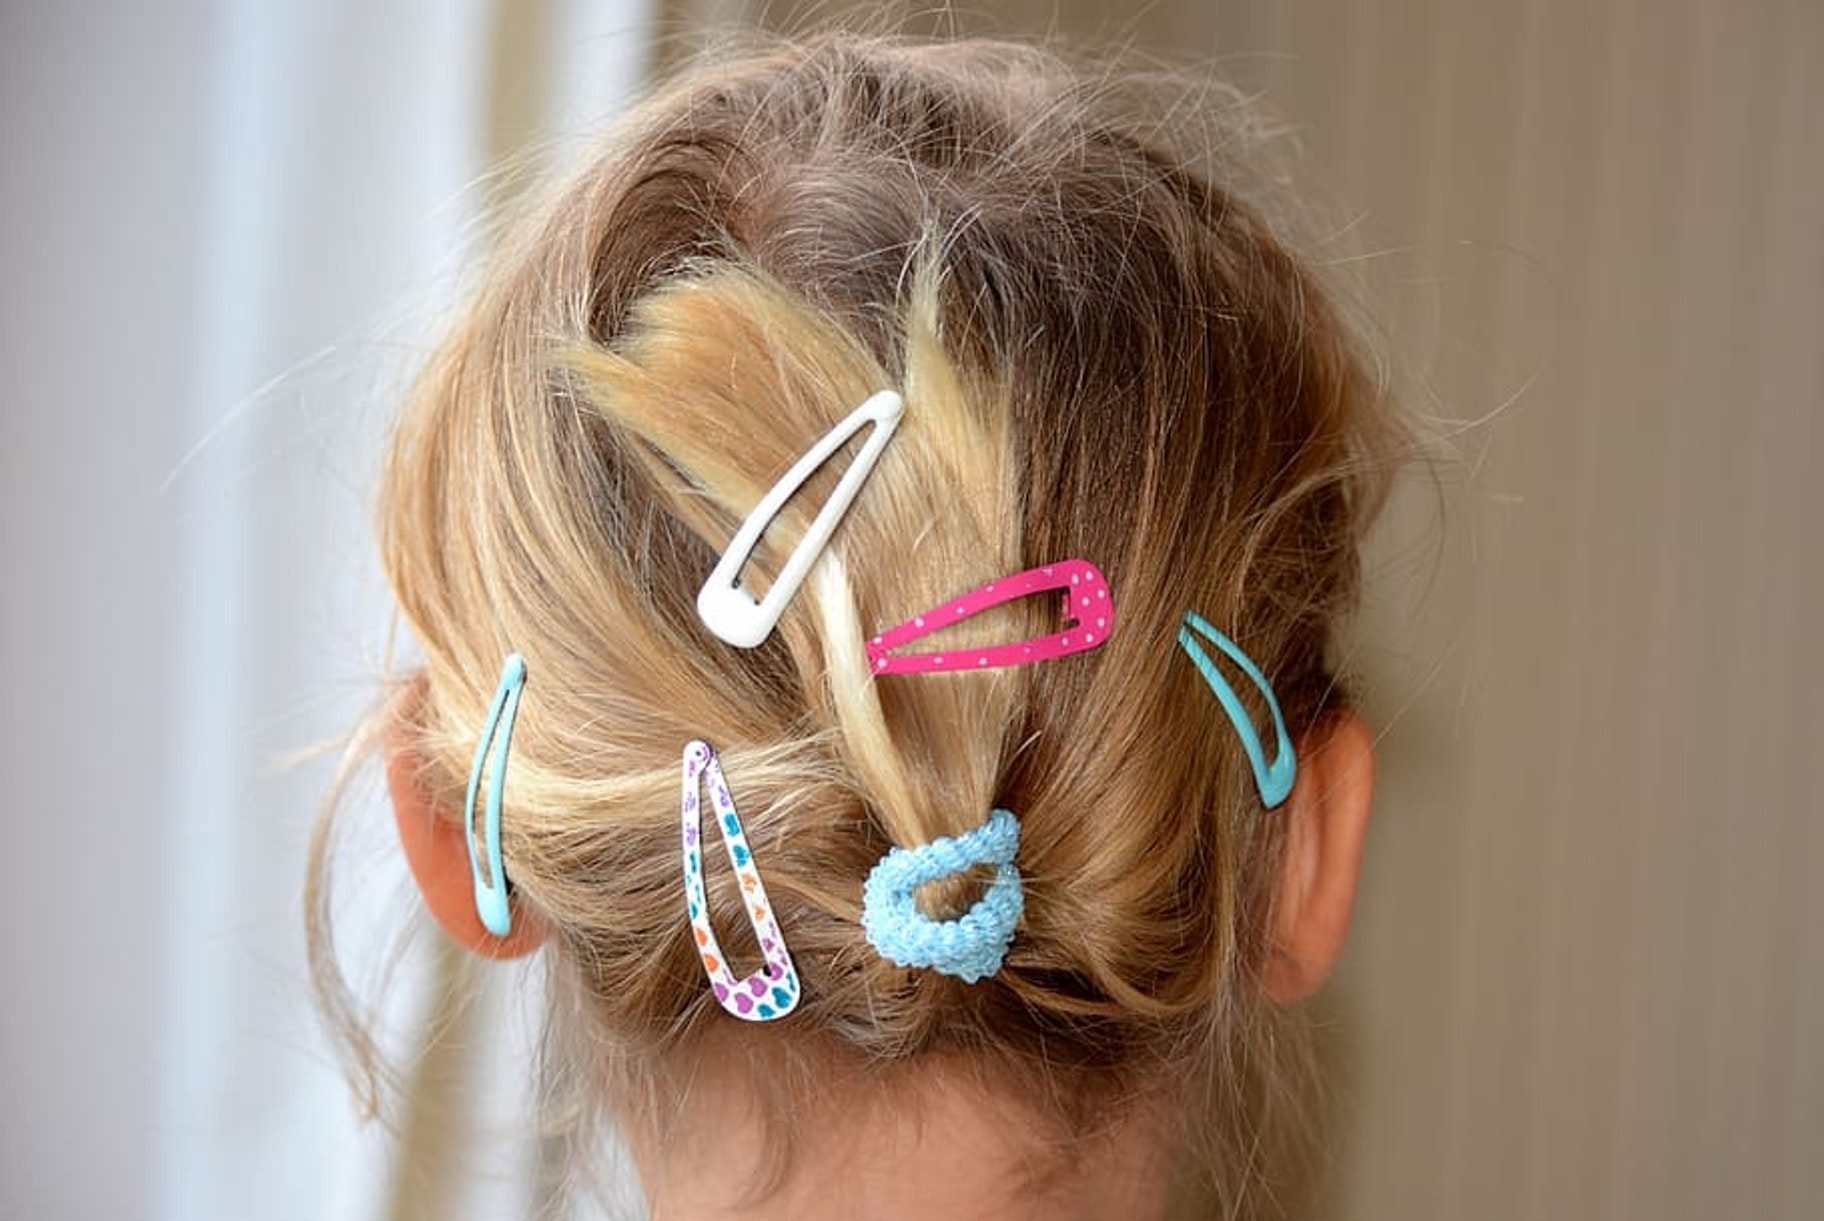 sell Barrettes online